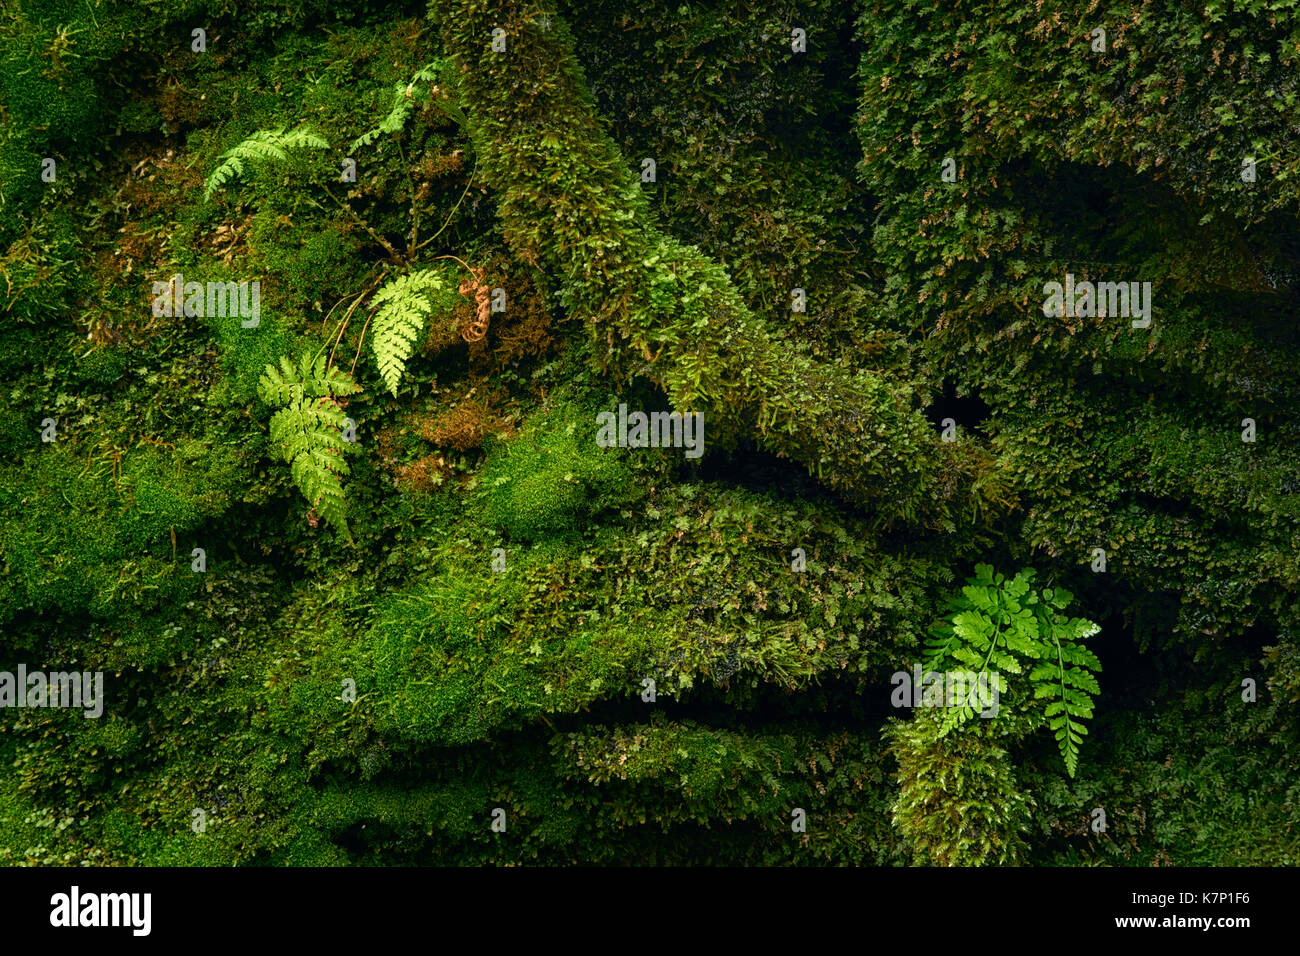 Lush moss and ferns along Kitchen Creek in Ricketts Glen State Park - Stock Image